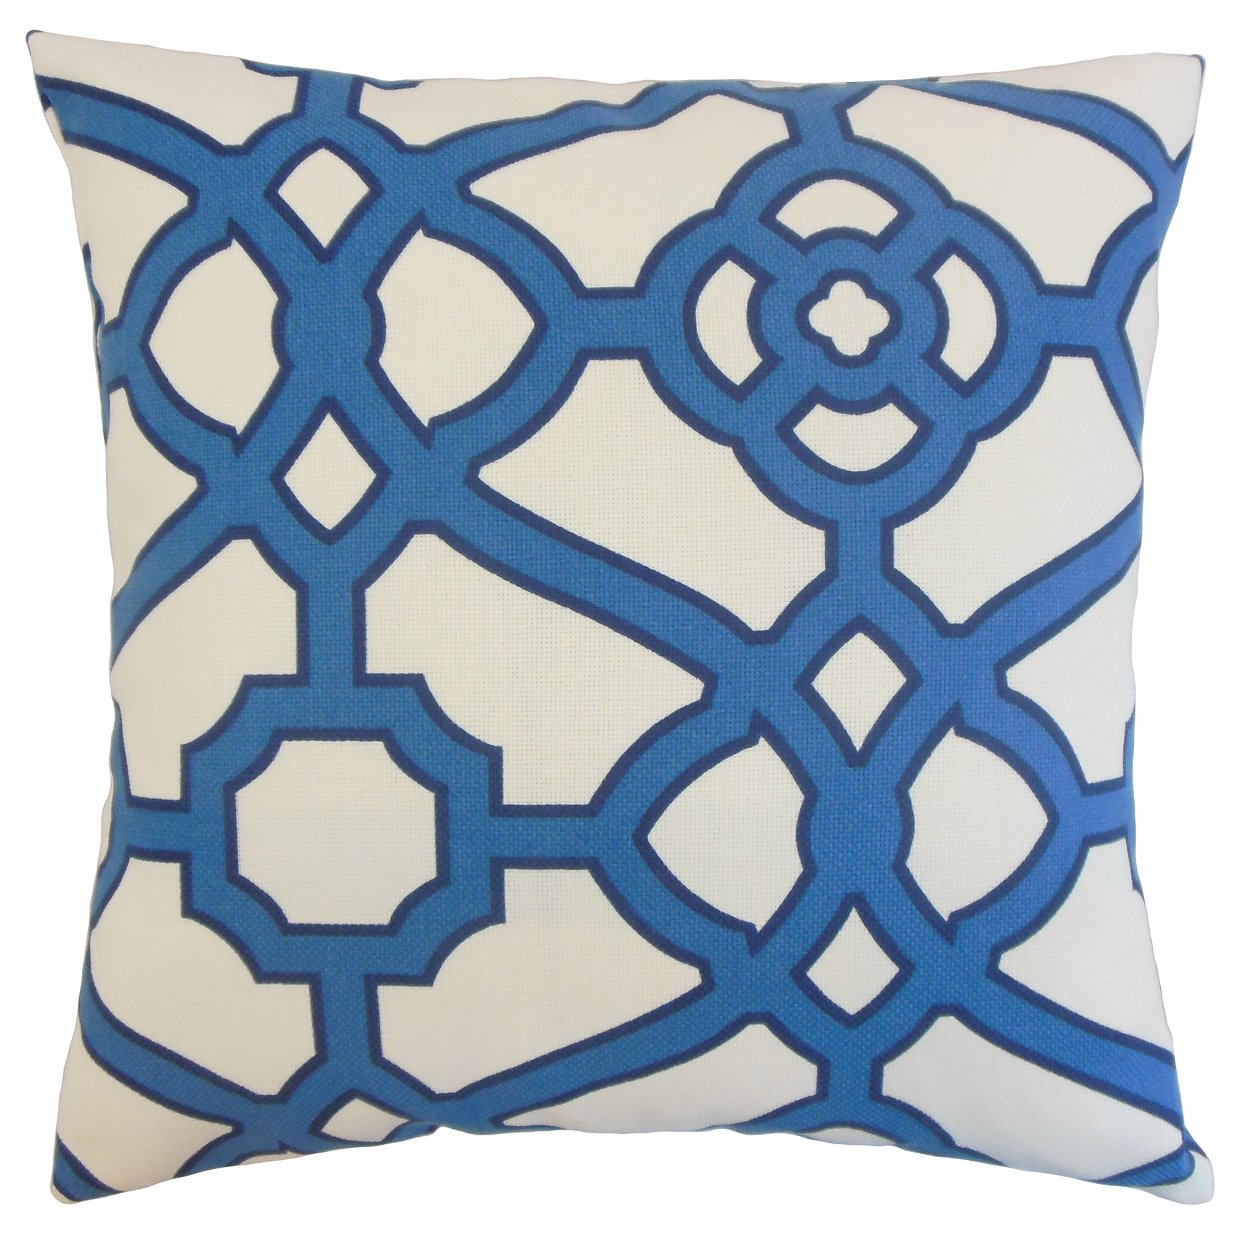 The Pillow Collection P18FLAT-FT-29006-NAVY-OUT Faina Outdoor Throw Pillow Cover 18 x 18